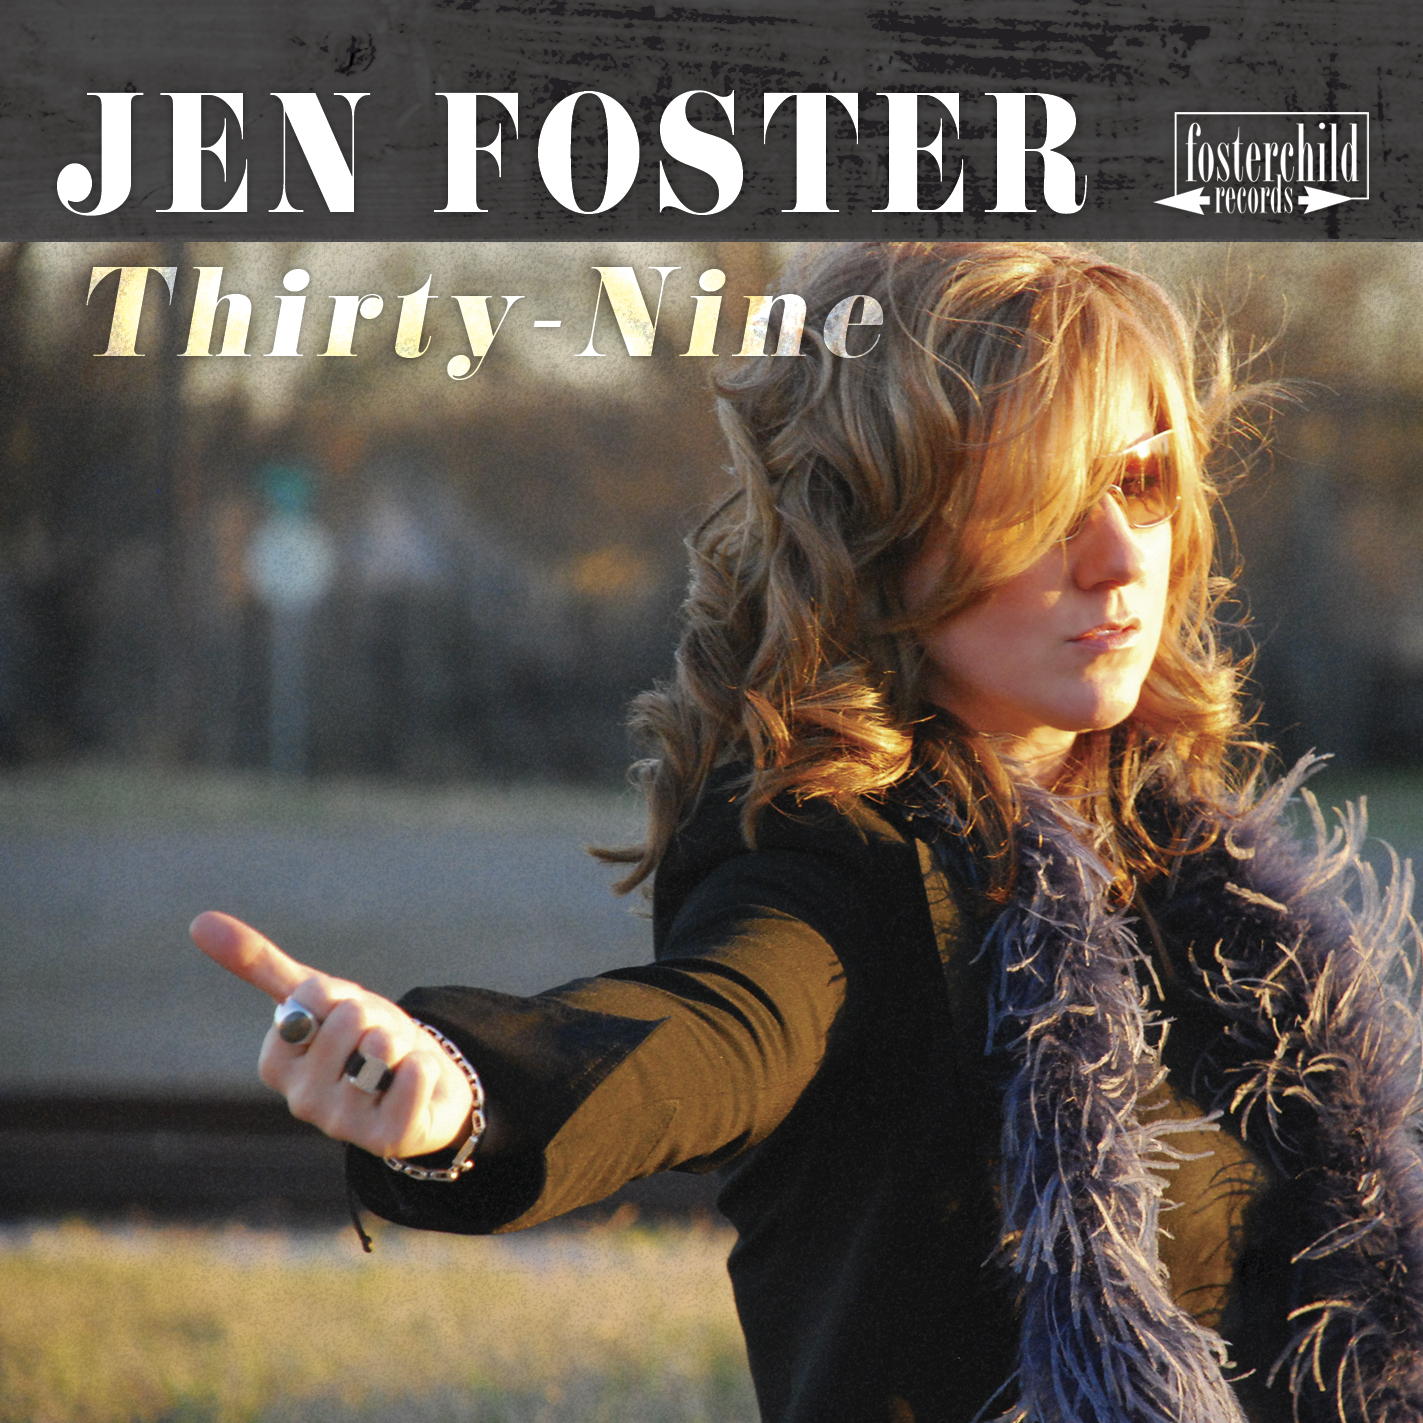 Jen Foster Thirty-Nine